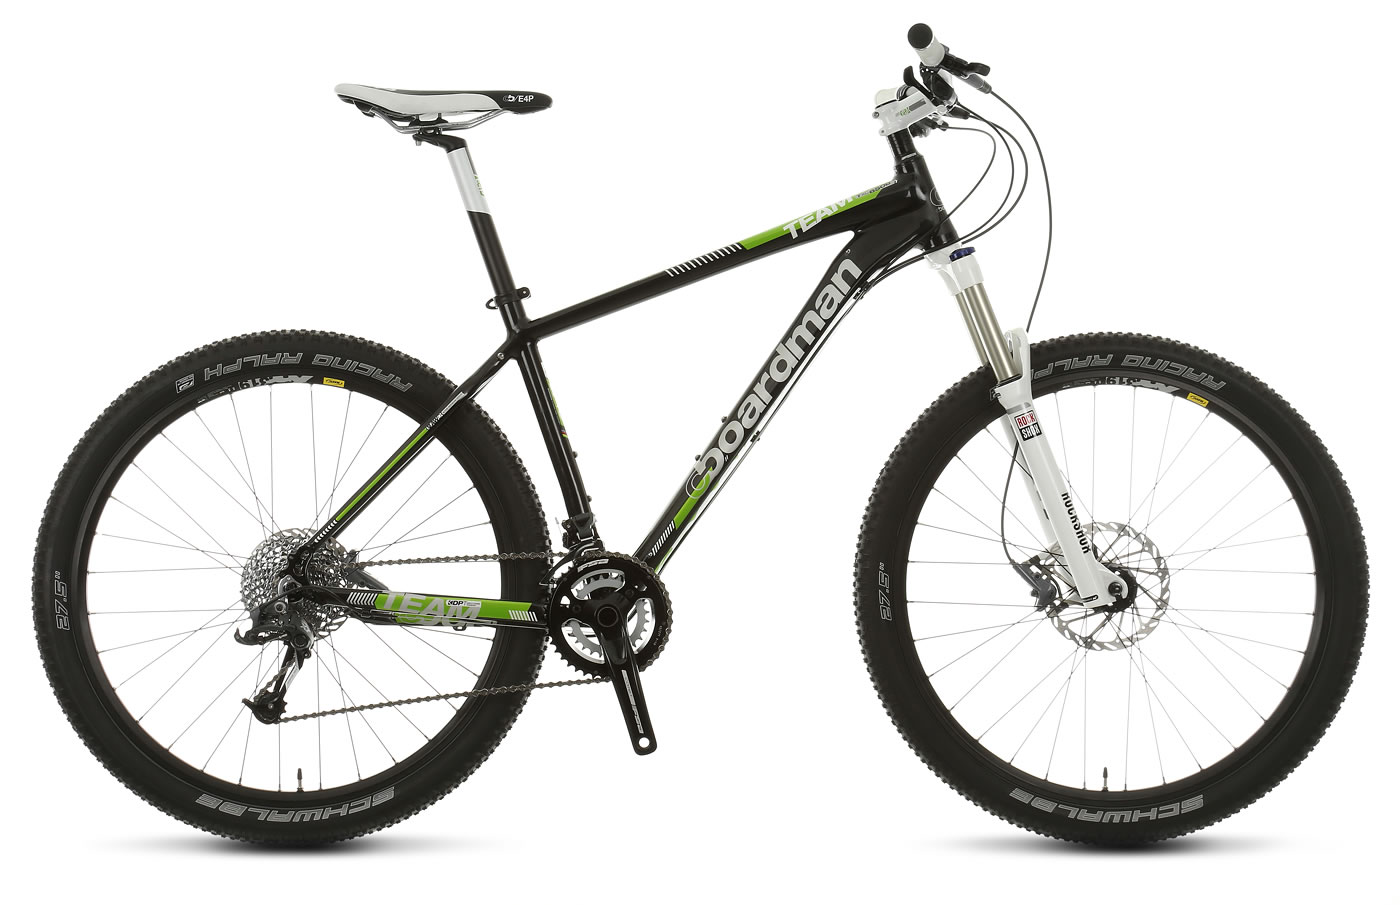 d6811d959b6 Boardman MTB TEAM Hardtail 650B 2014 review - The Bike List